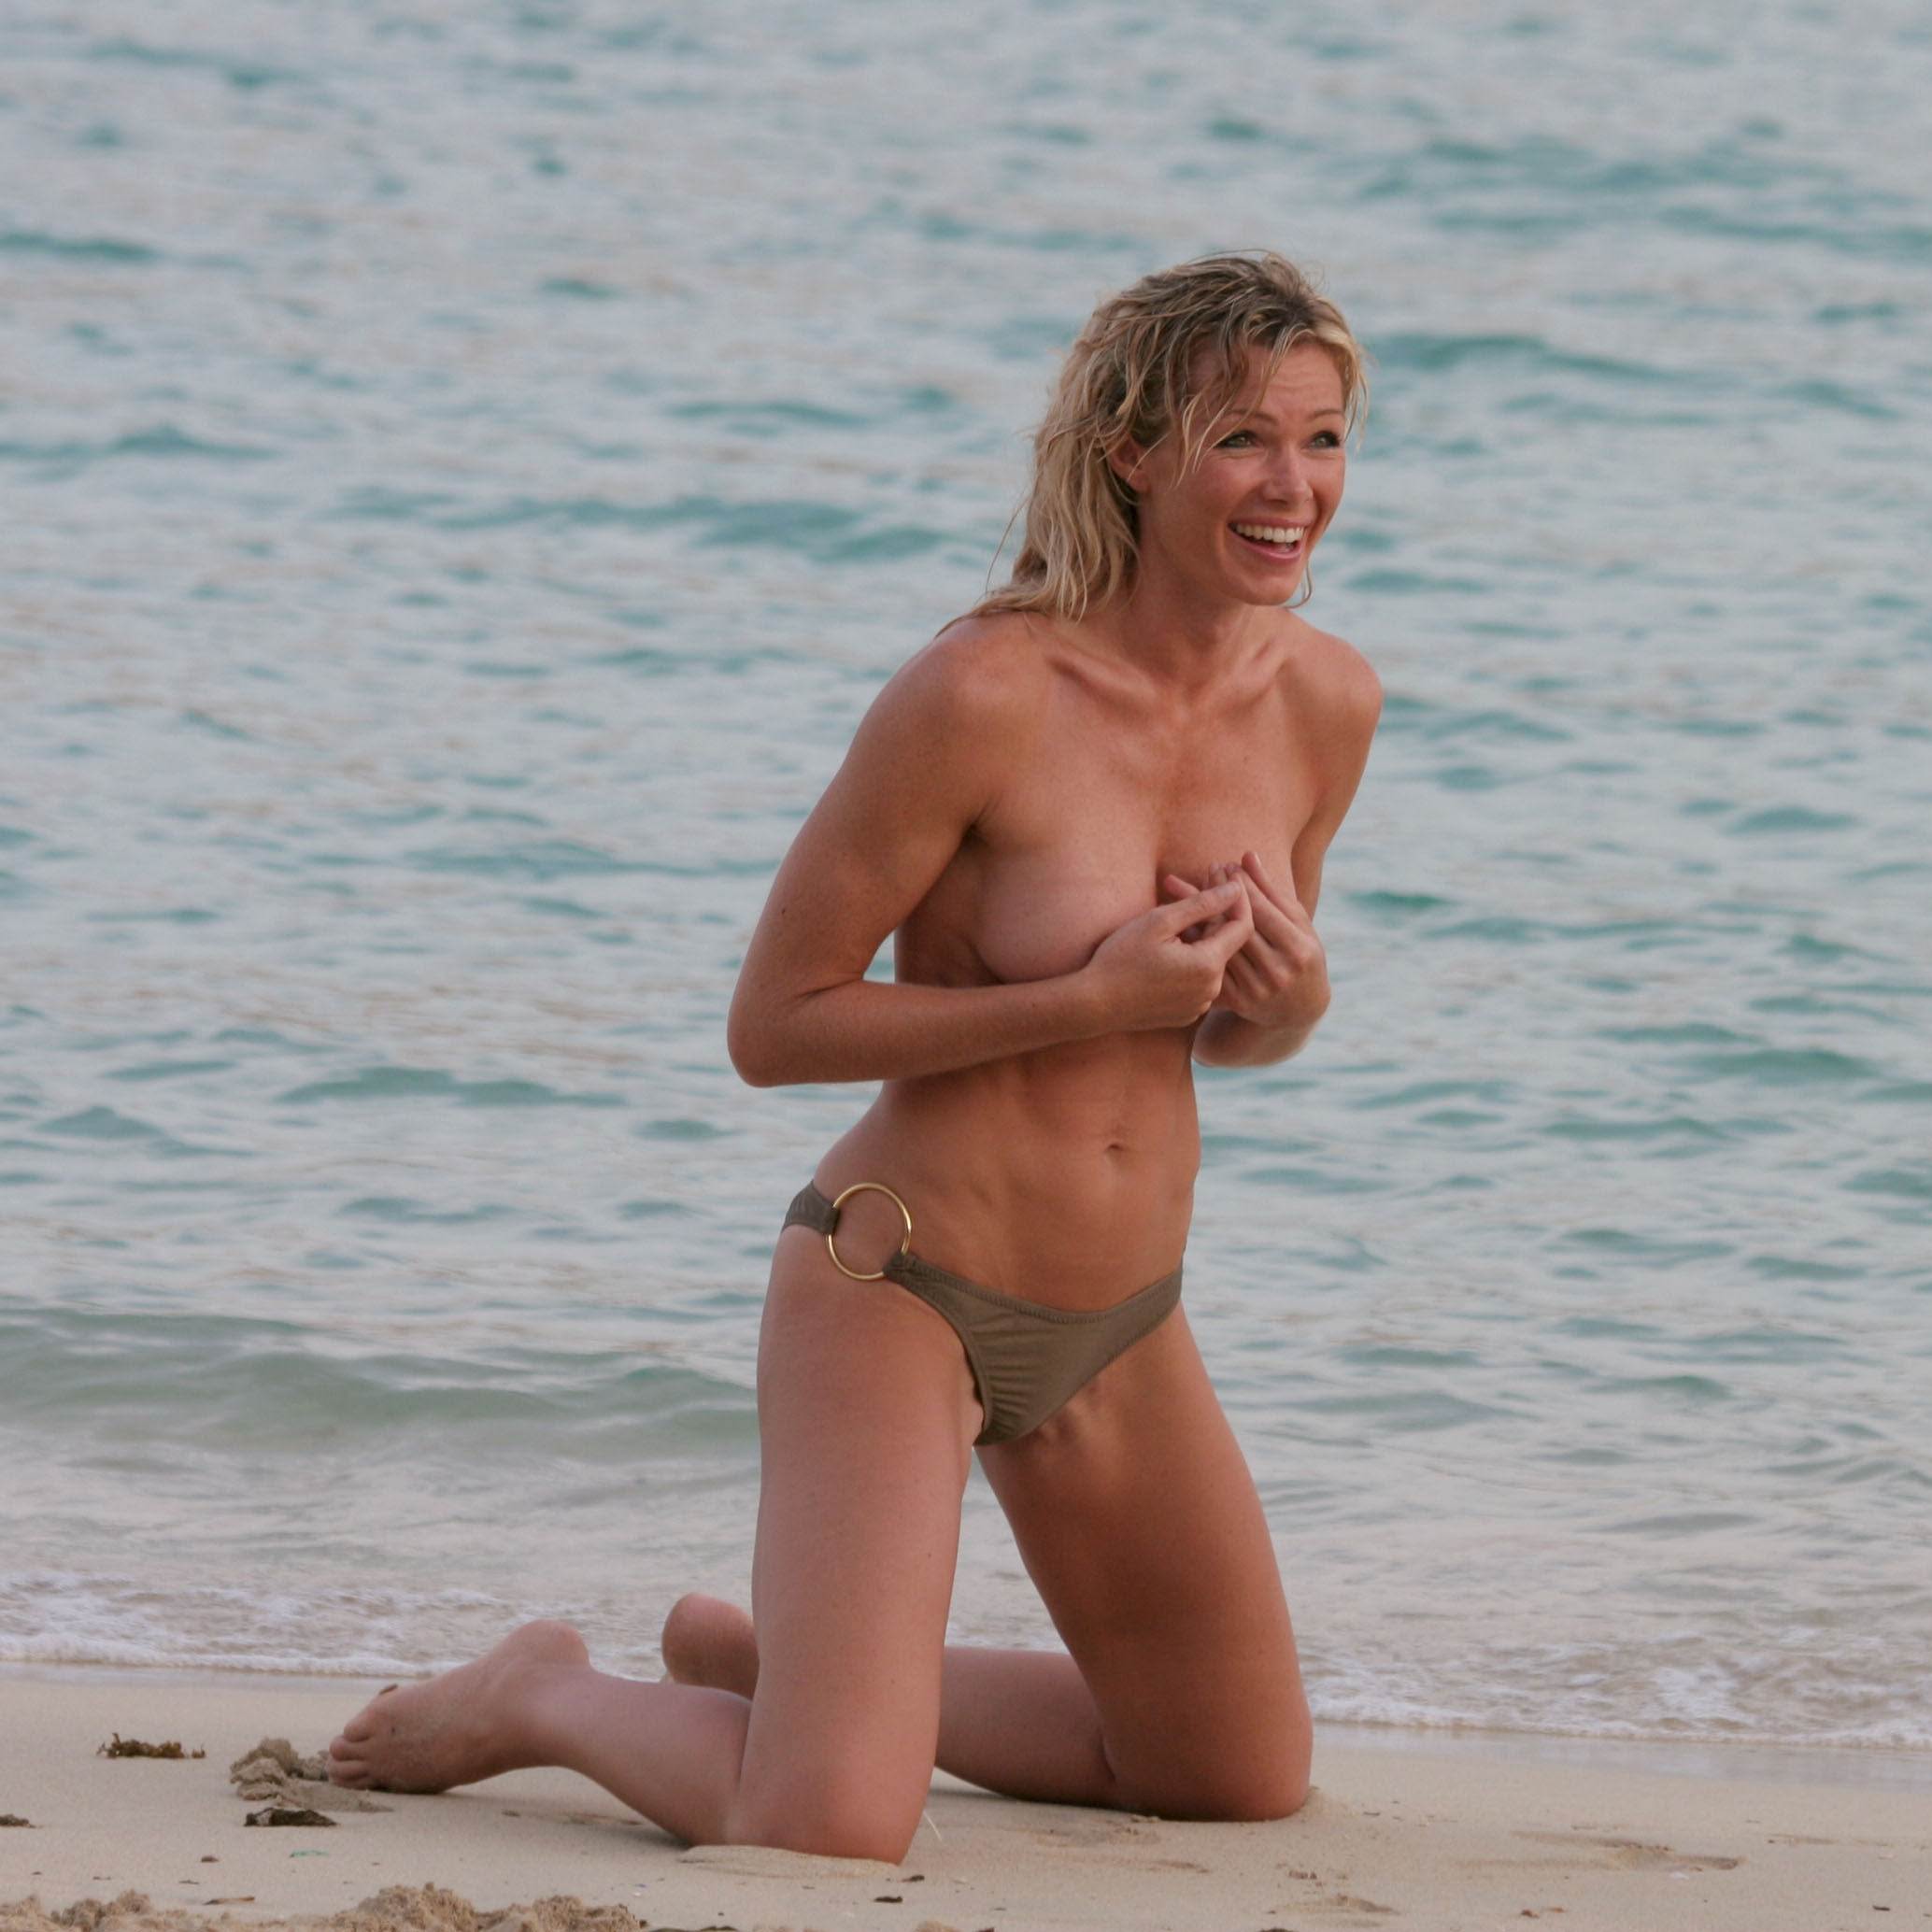 Nell mcandrew nude pictures gallery, nude and sex scenes